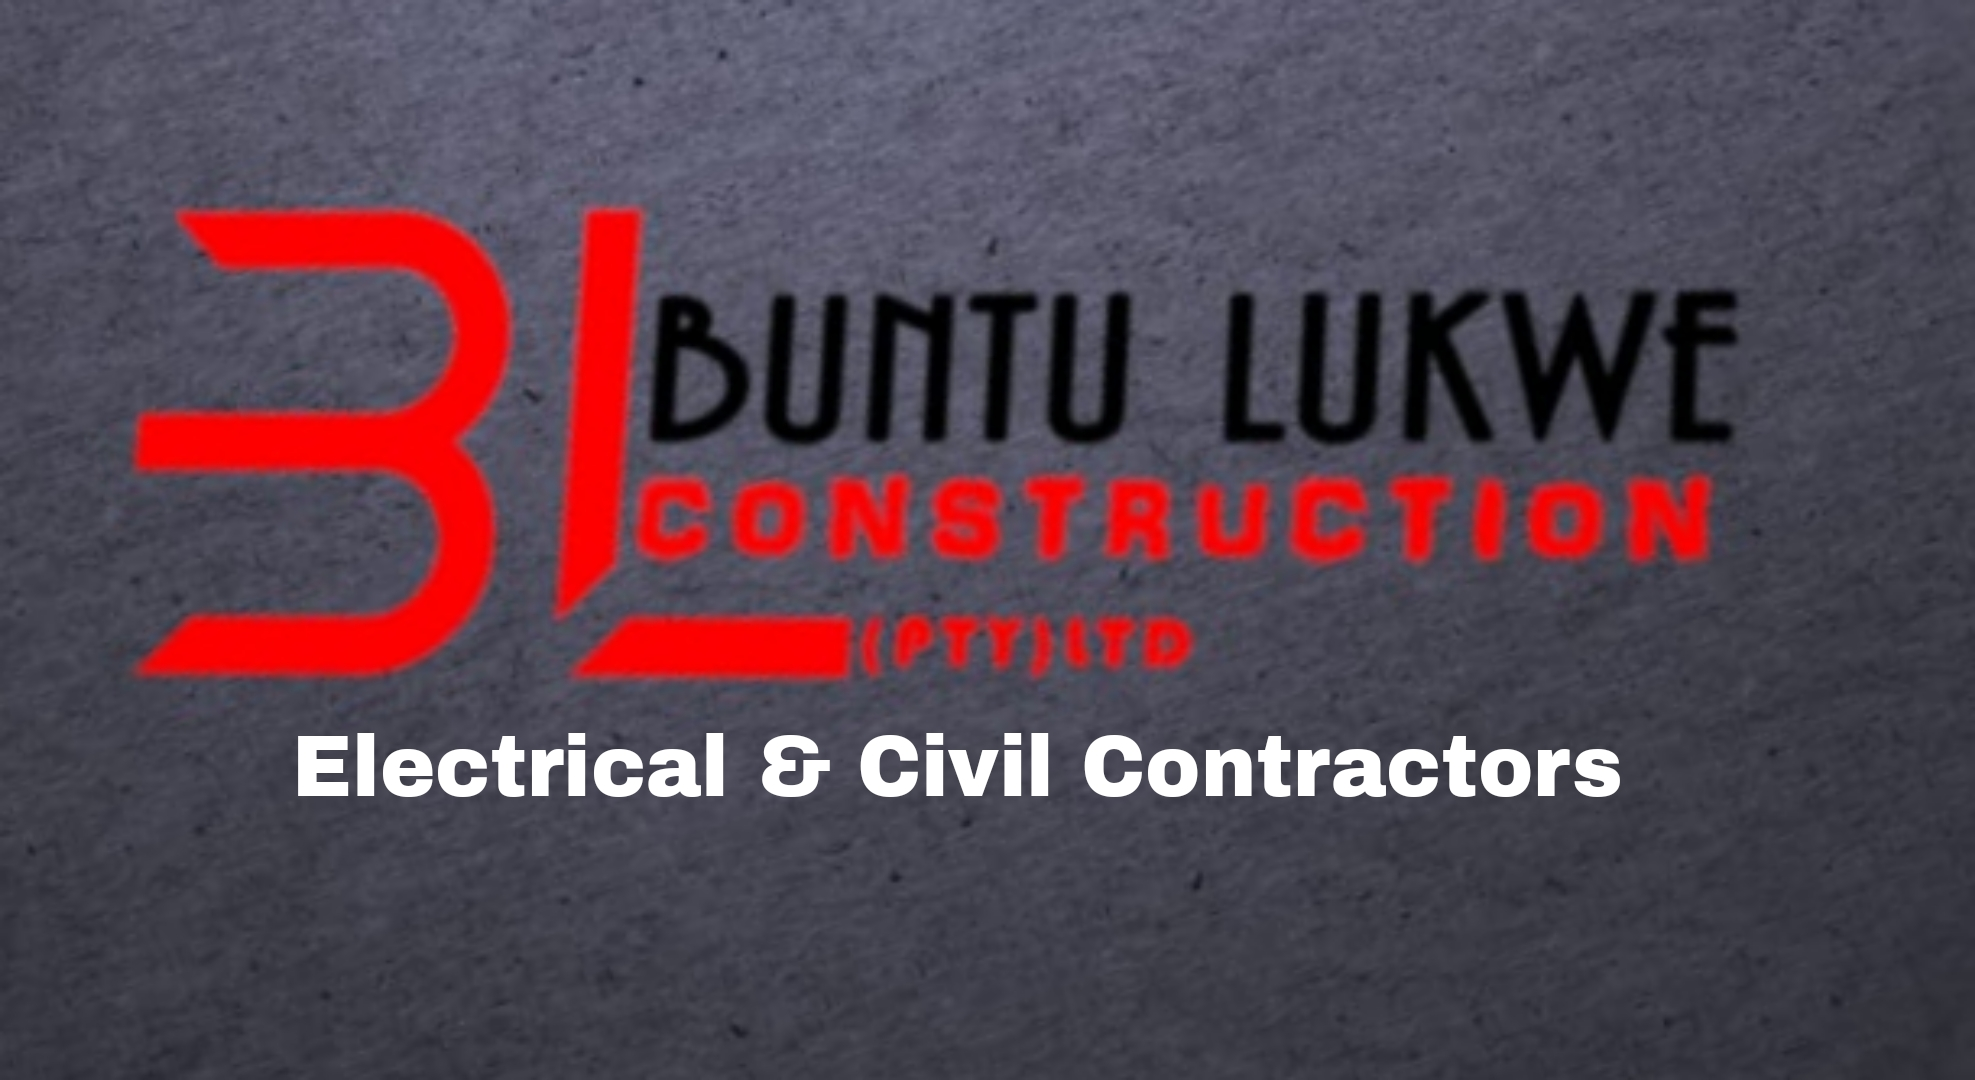 Business Listing for BL Construction Pty Ltd